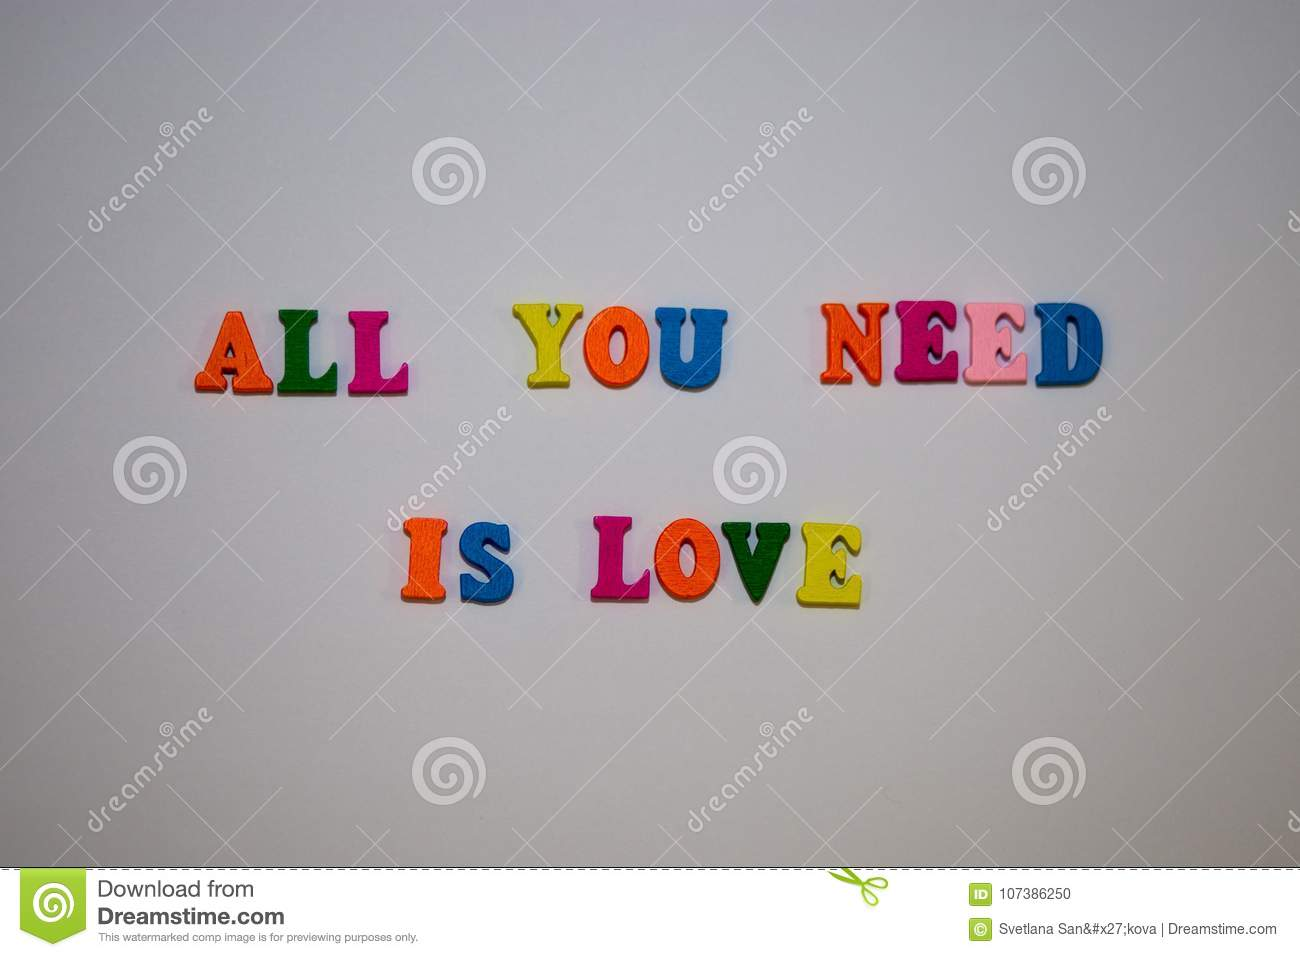 All You Need Is Love message from multicolor alphabet letters